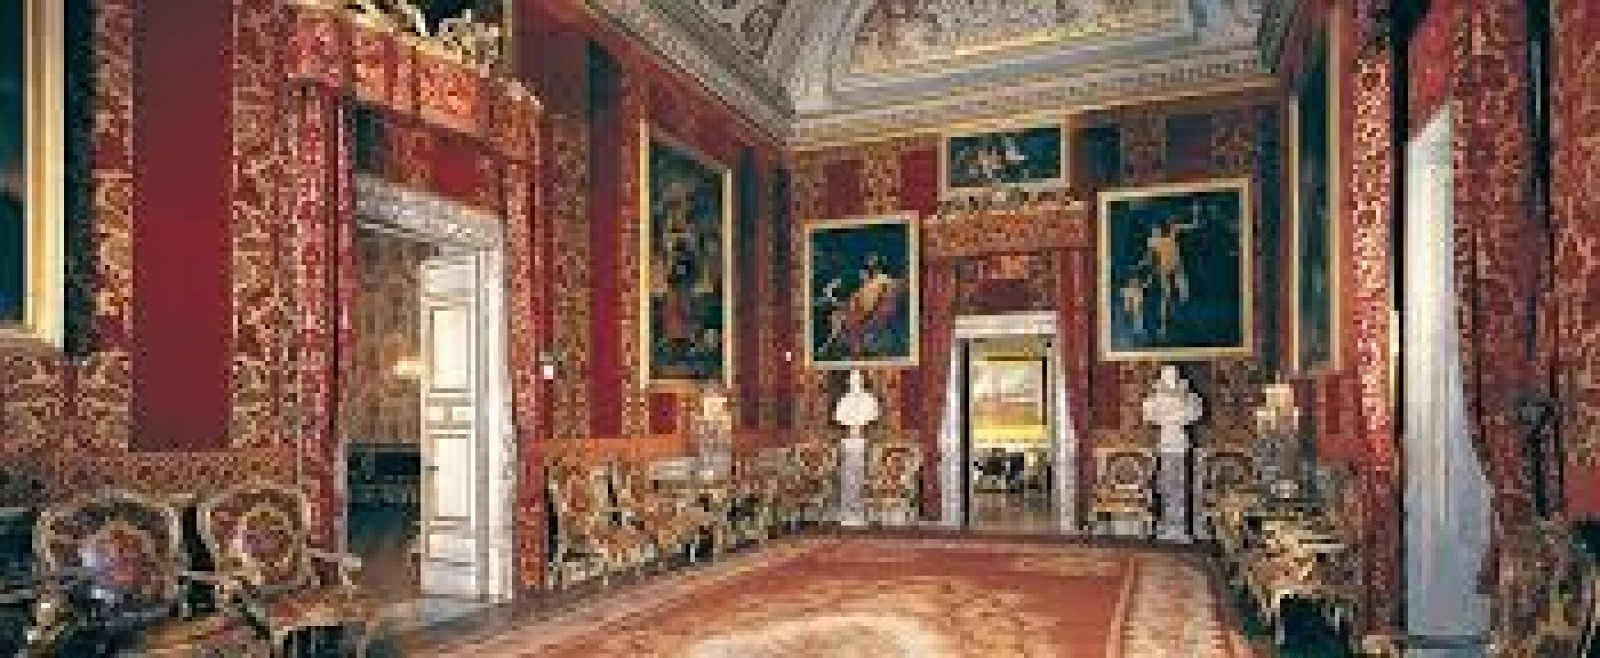 Gallery - Visita guidata della Galleria Doria Pamphili